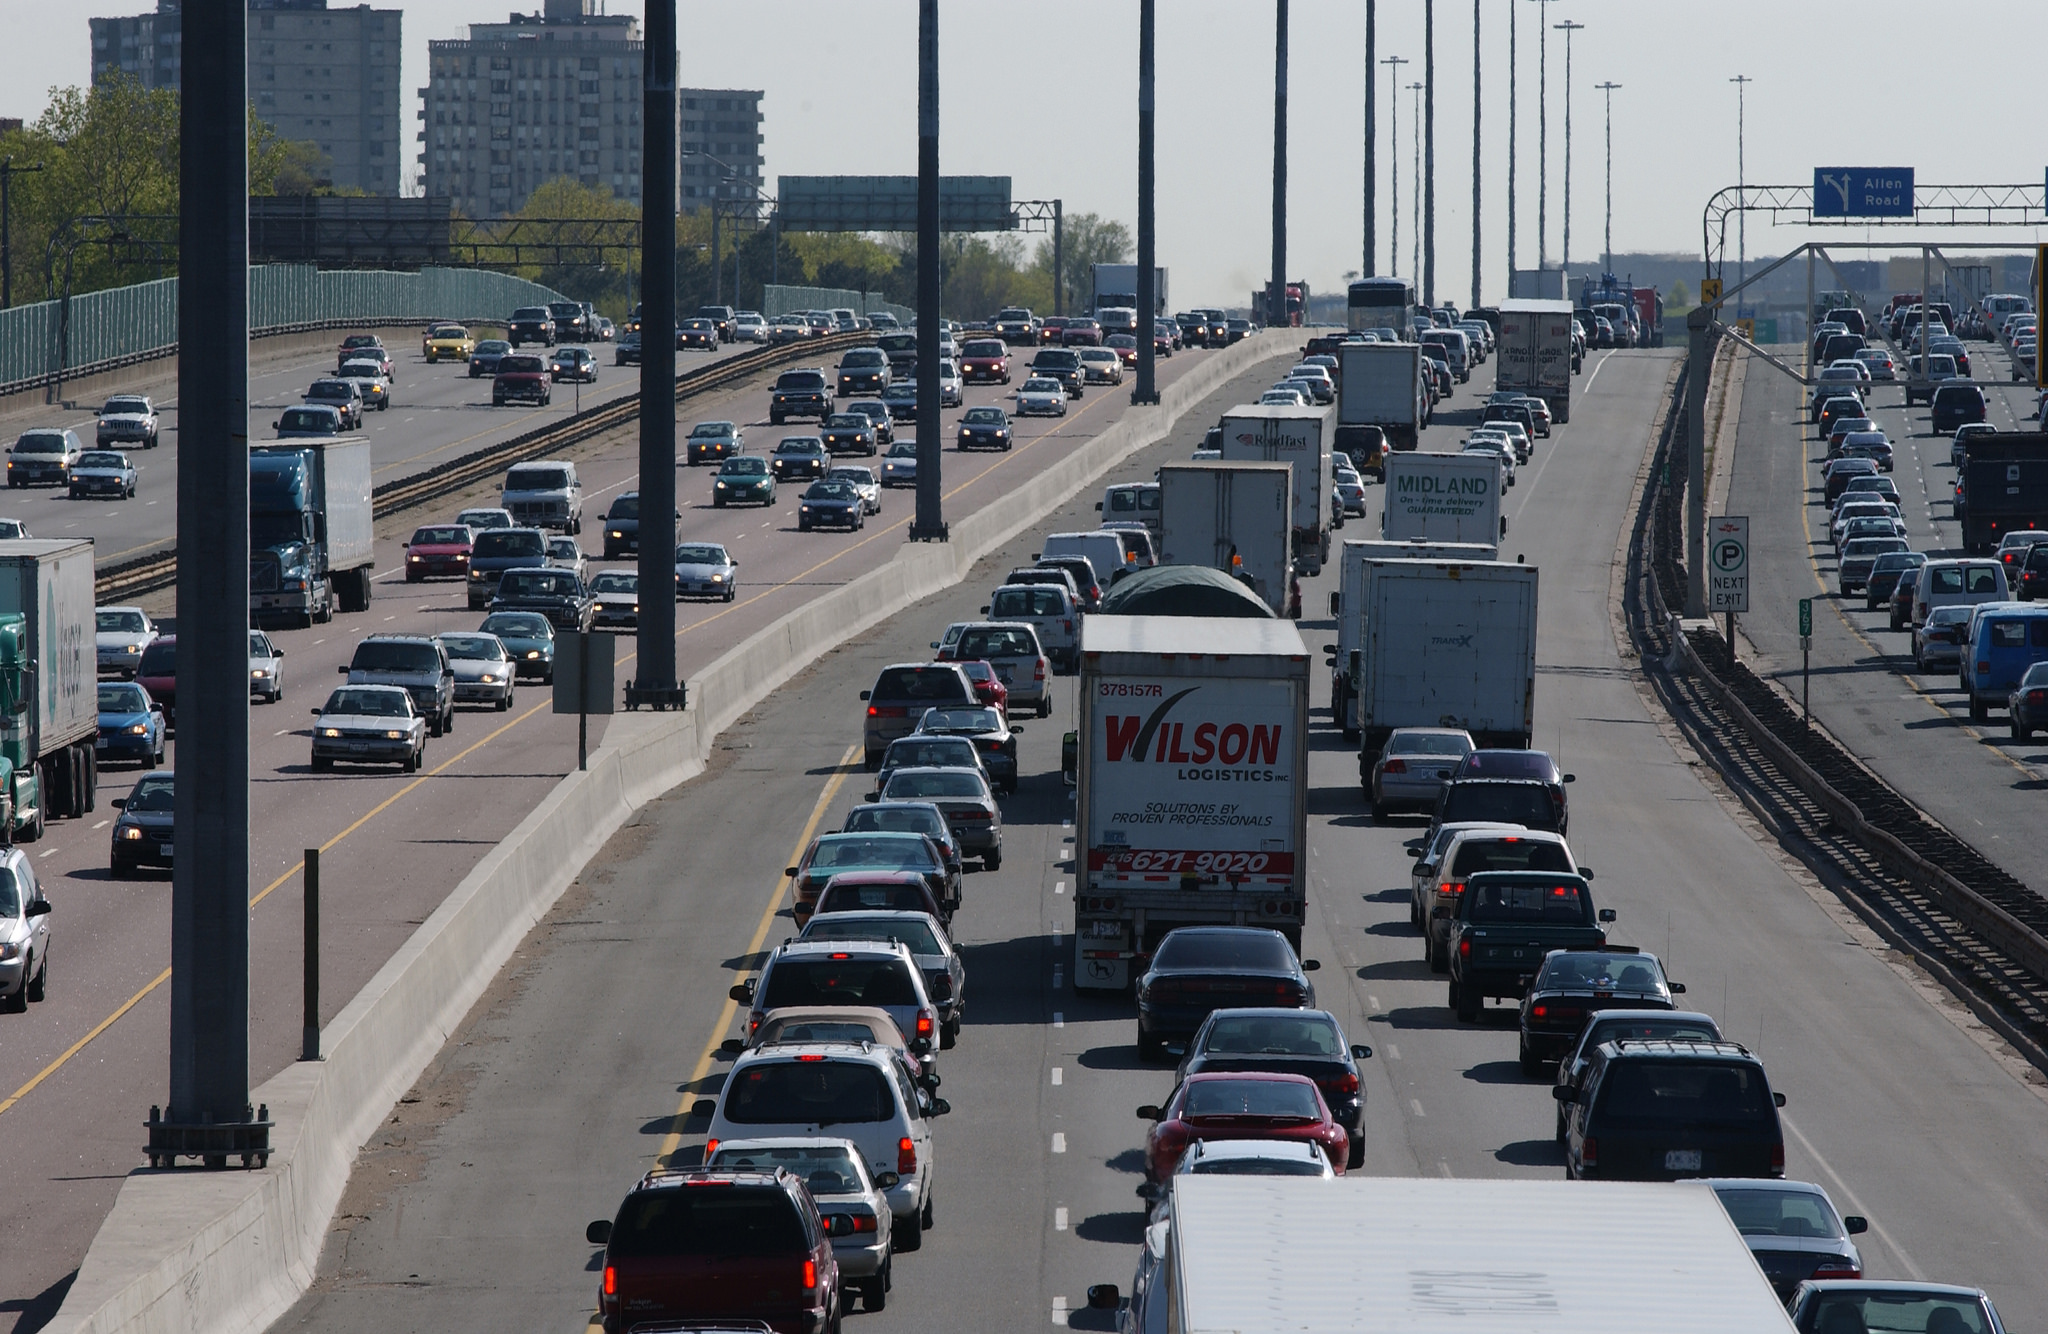 Gridlock on the 410, near Toronto |© MMA/MHO/ Flickr